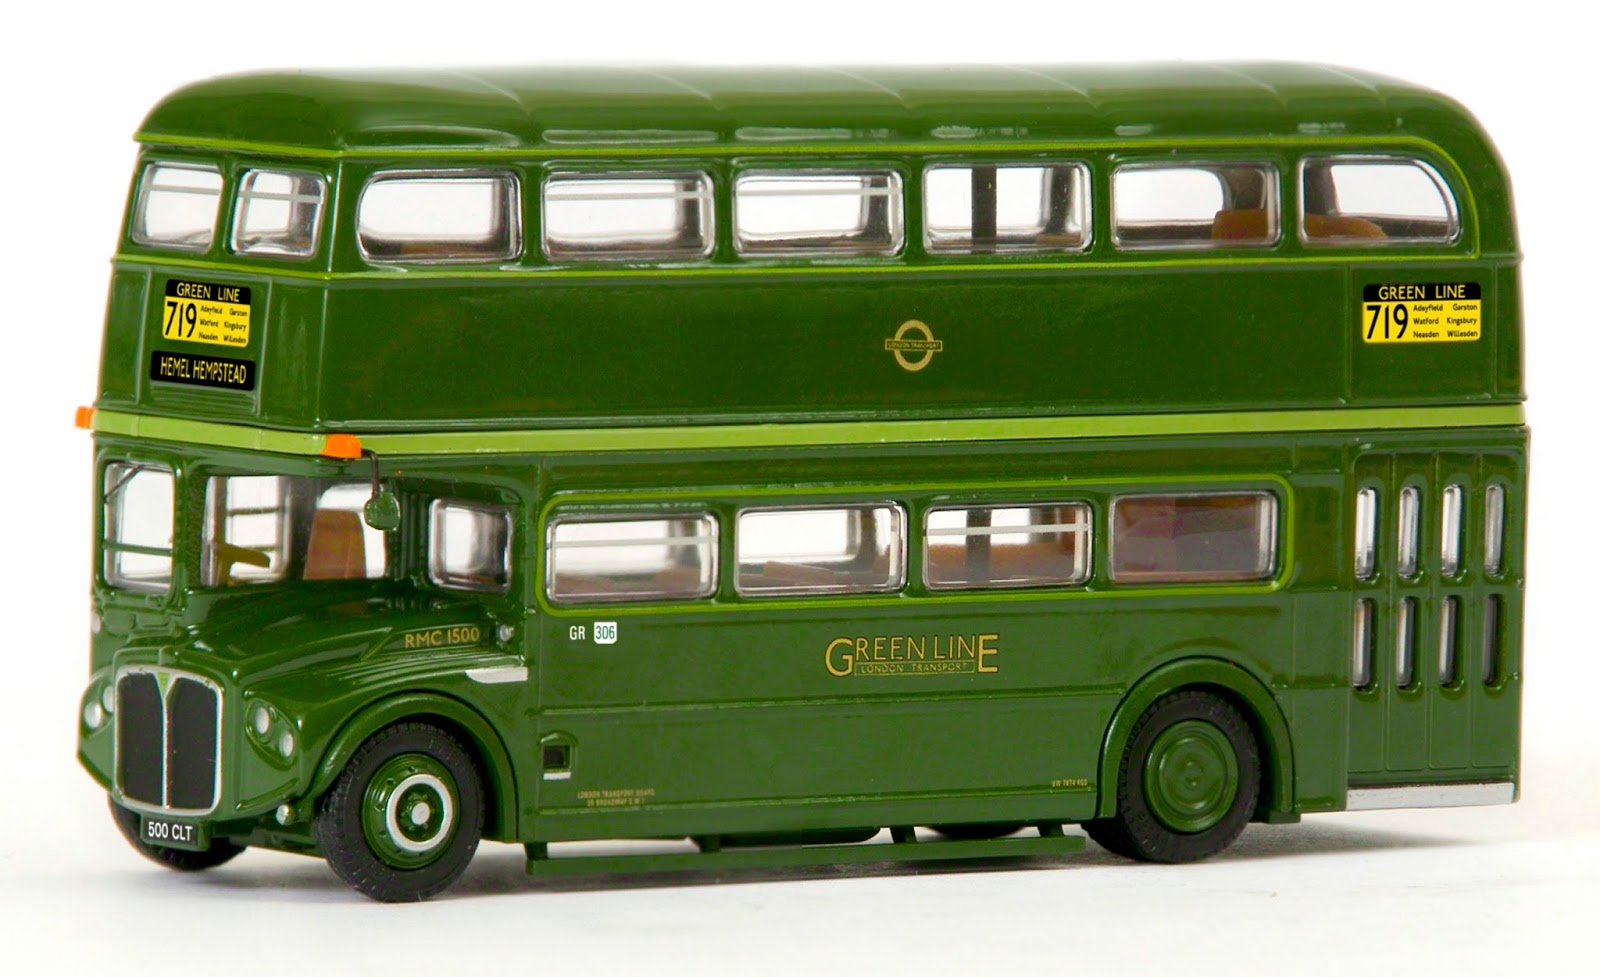 EXCLUSIVE FIRST EDITIONS 31708 RMC ROUTEMASTER GREEN LINE